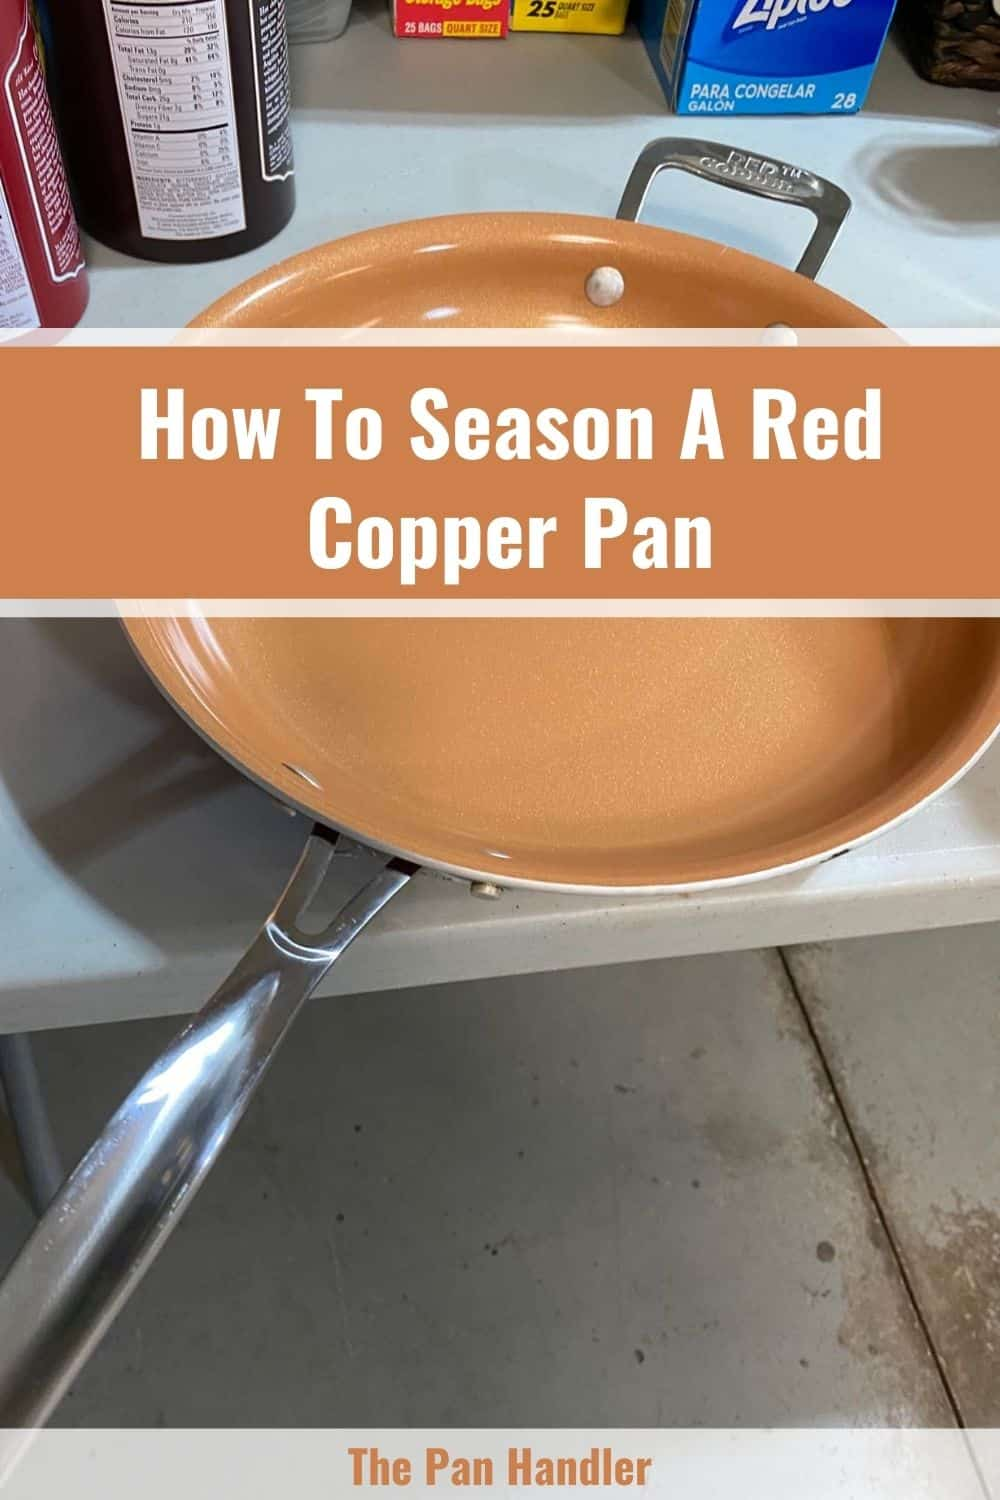 red copper pan sticking